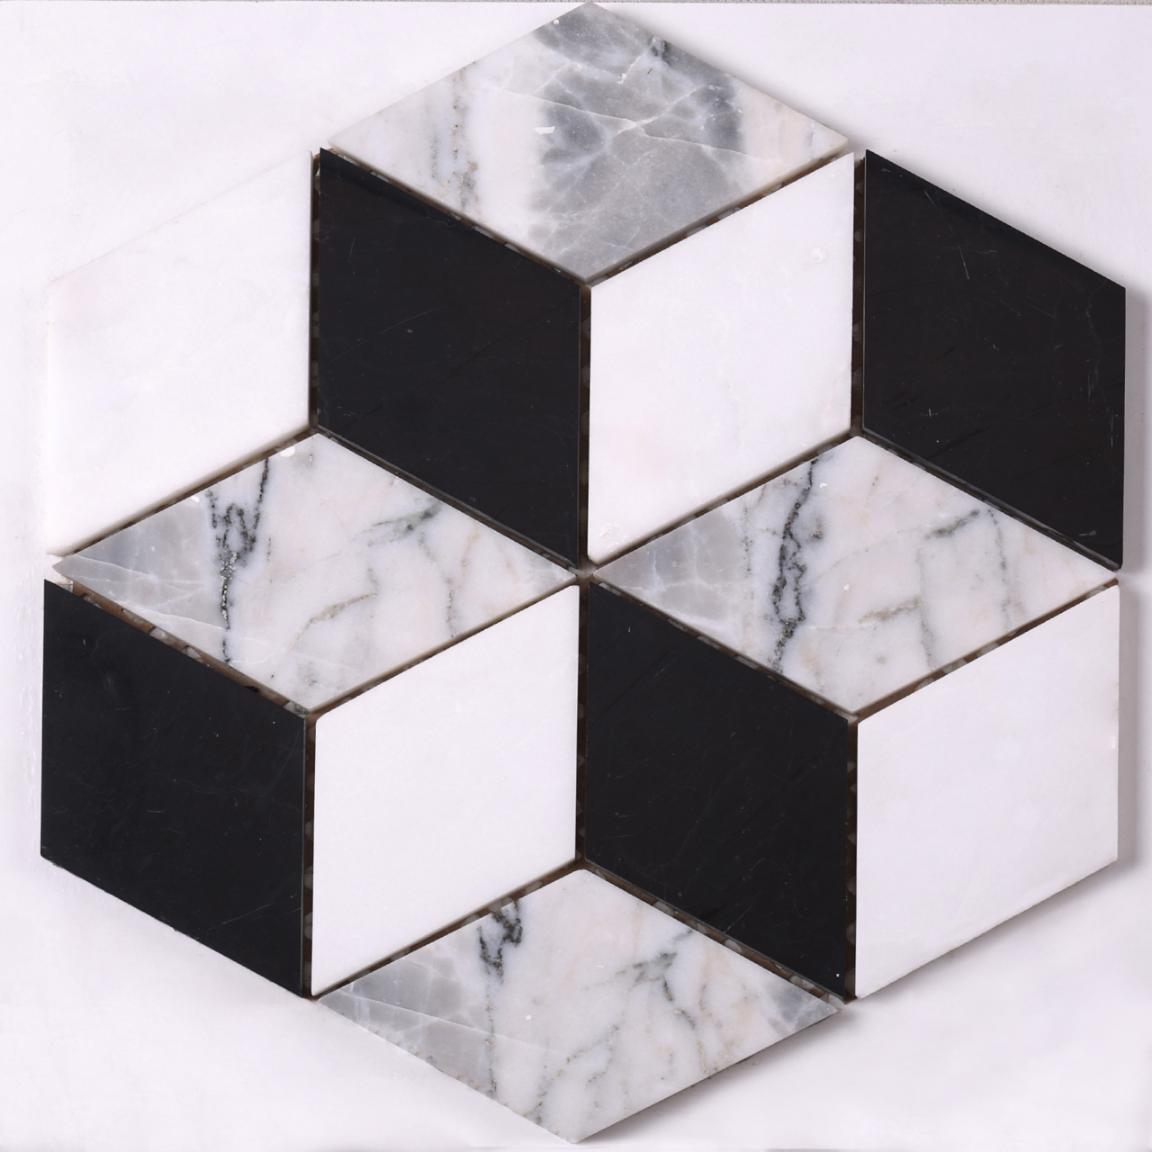 Heng Xing Top stone wall tiles inquire now for kitchen-1